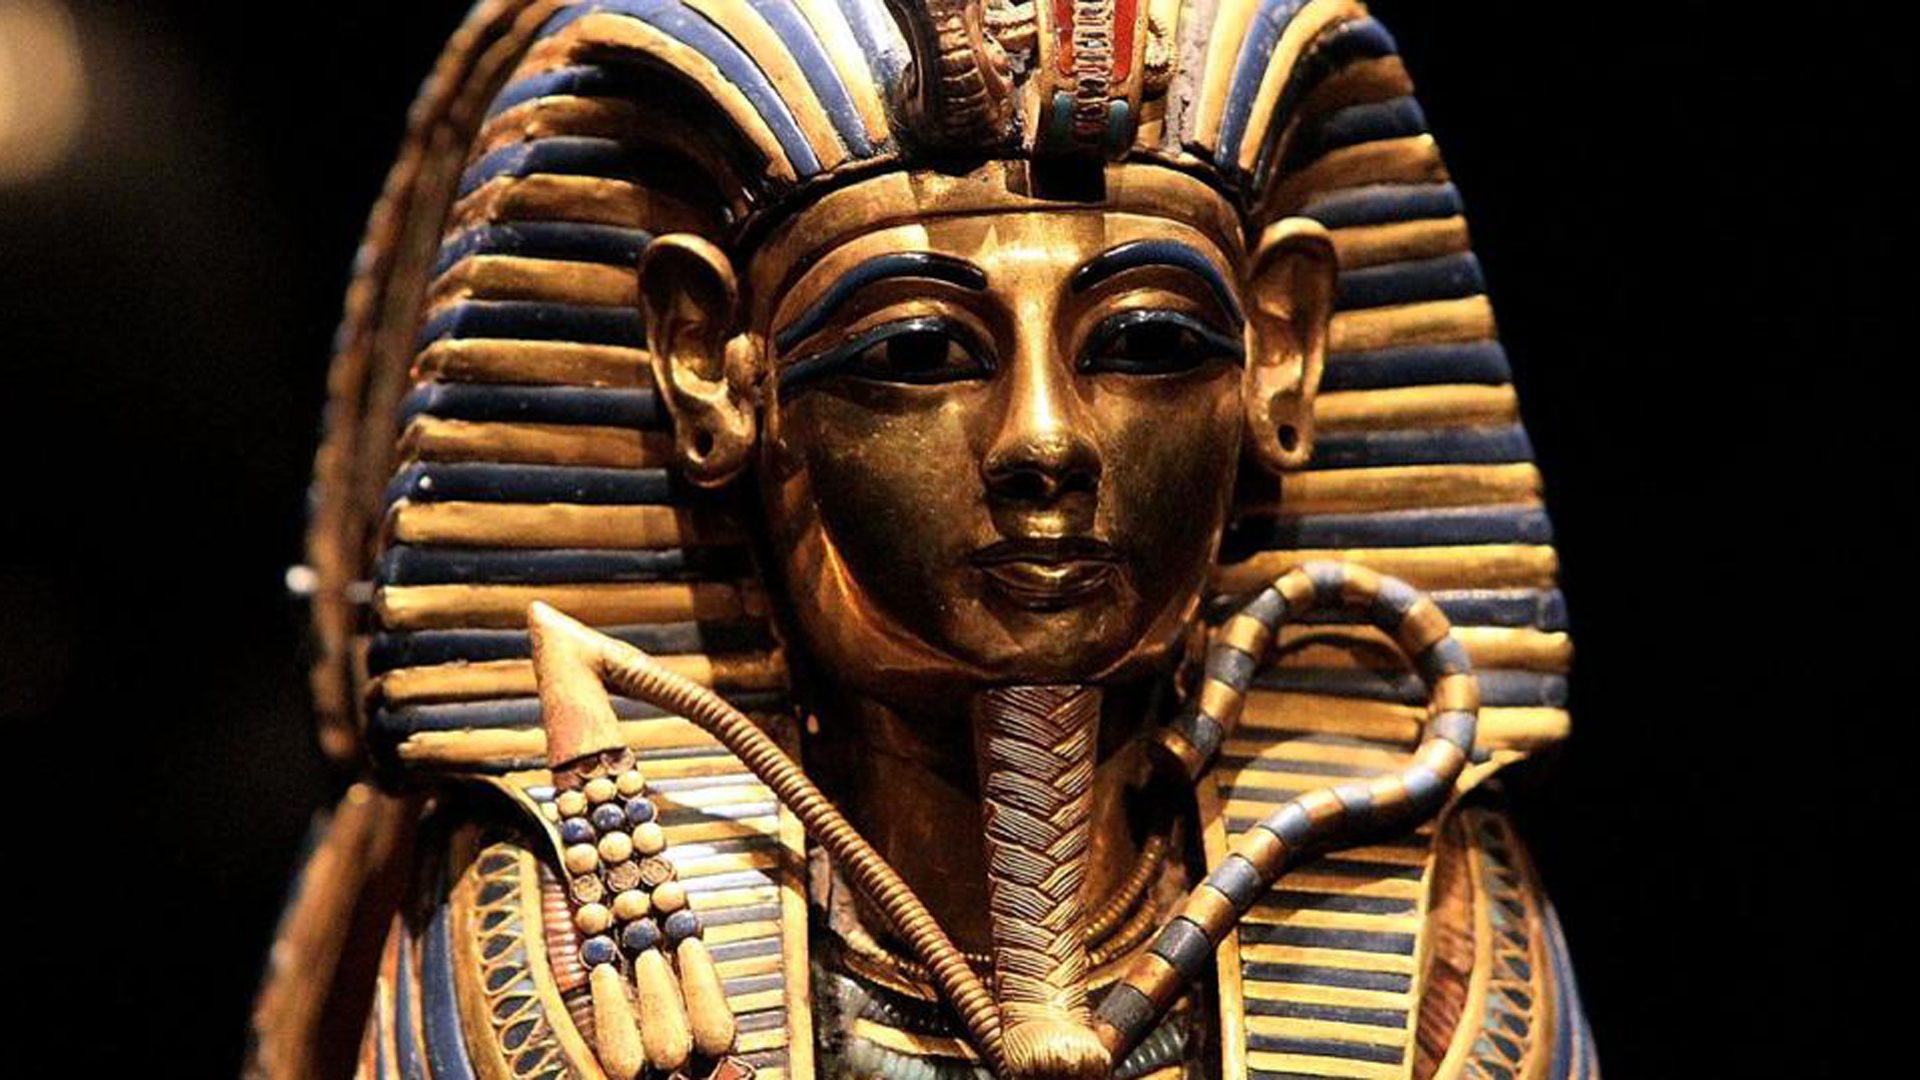 Things About Ancient Egypt That Still Can't Be Explained